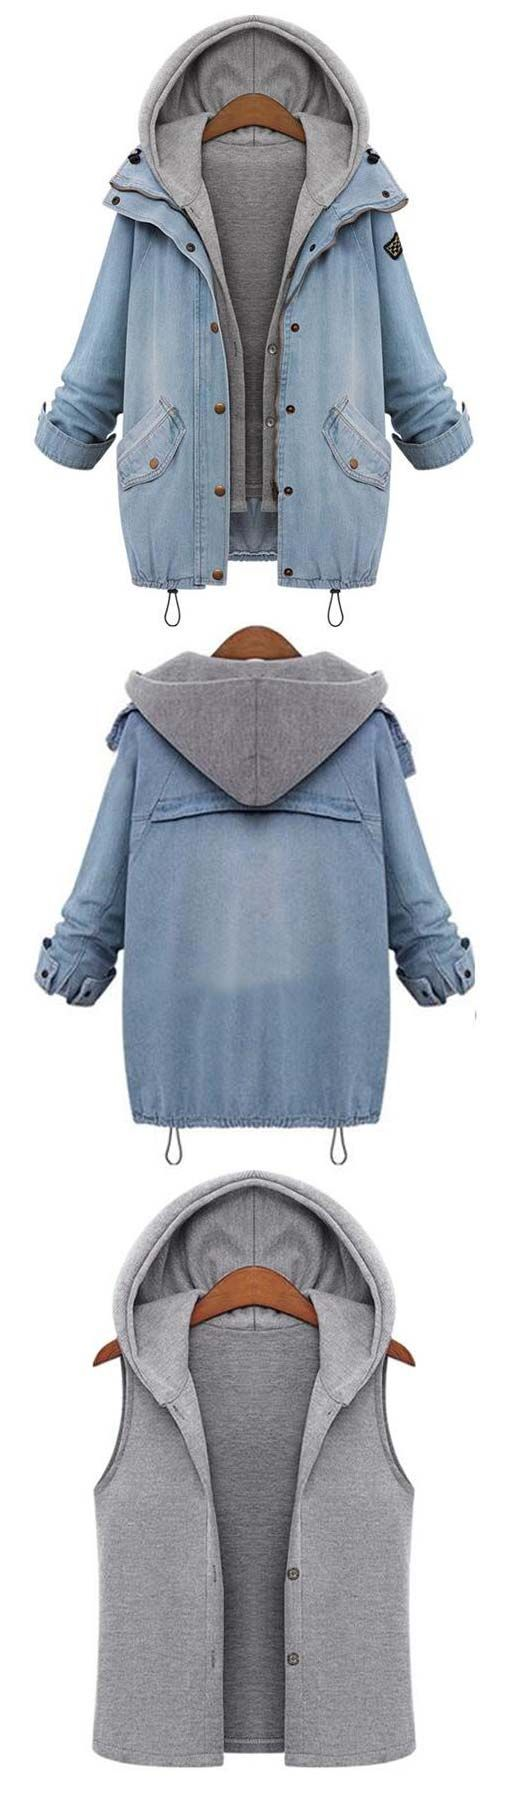 Catch the last of the fall heat and welcome winter's coming. The Always You Coat features a hooded vest and denim coat. Shop this look at CUPSHE.COM !